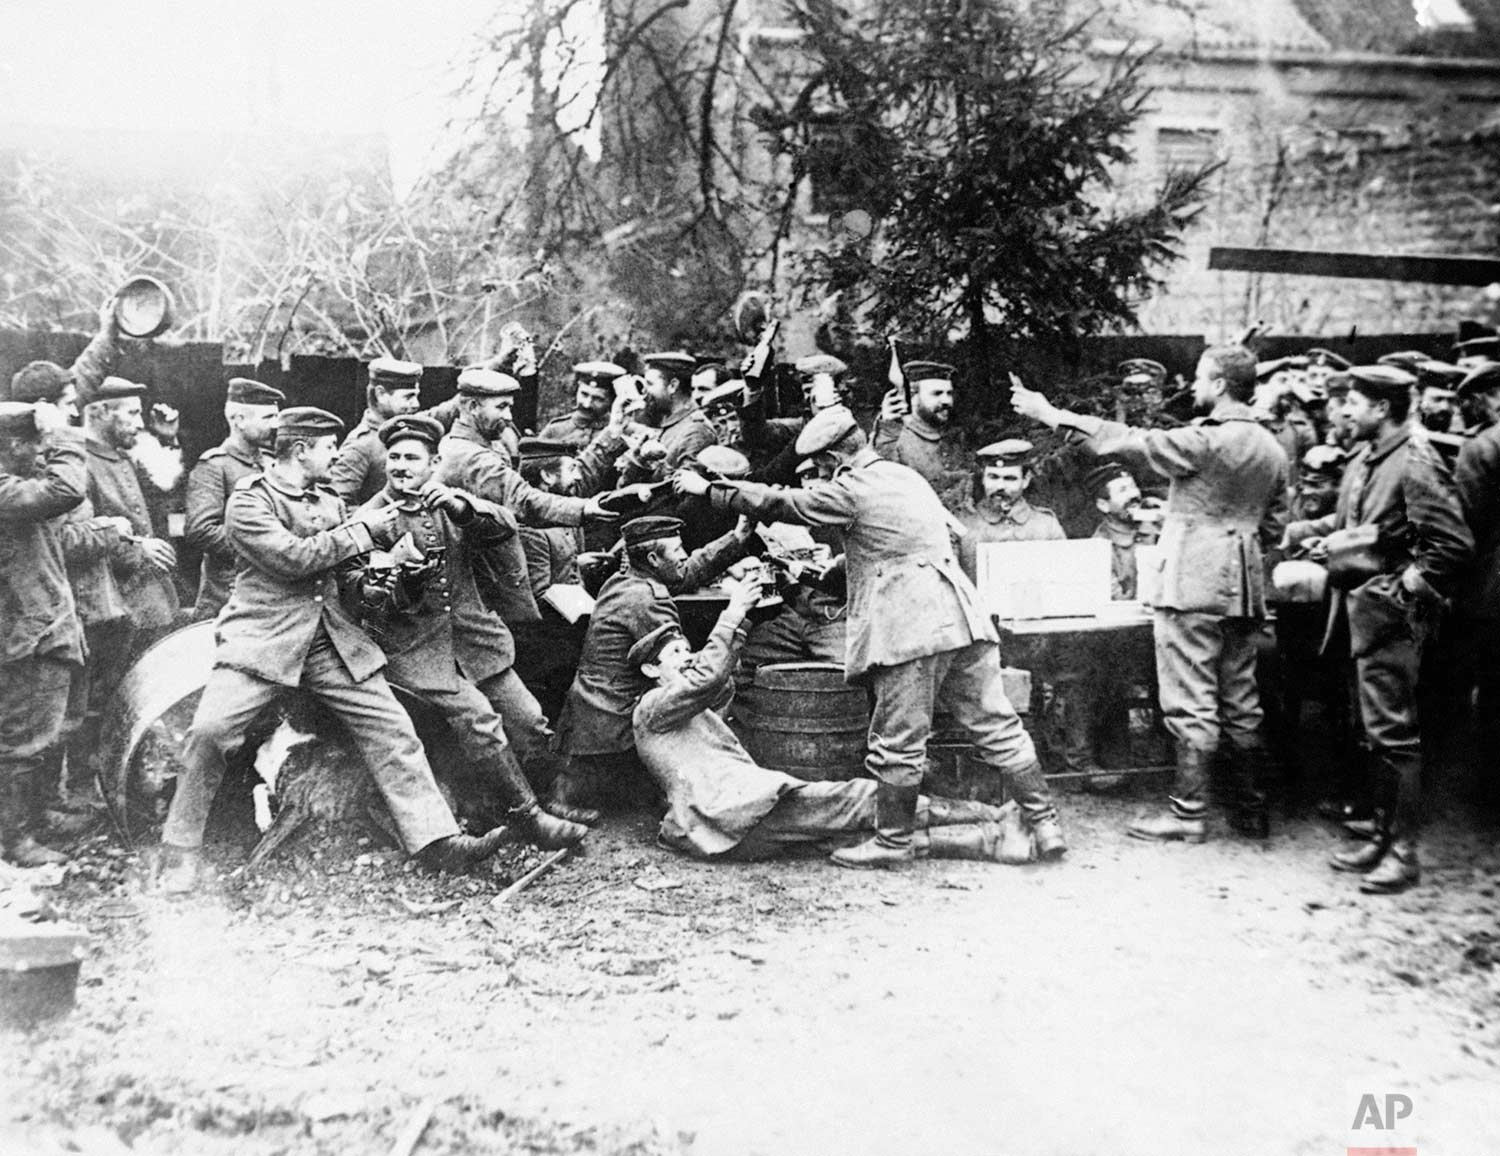 In this 1914 photo, German soldiers gather at Christmas at an unknown location during World War One. (AP Photo)